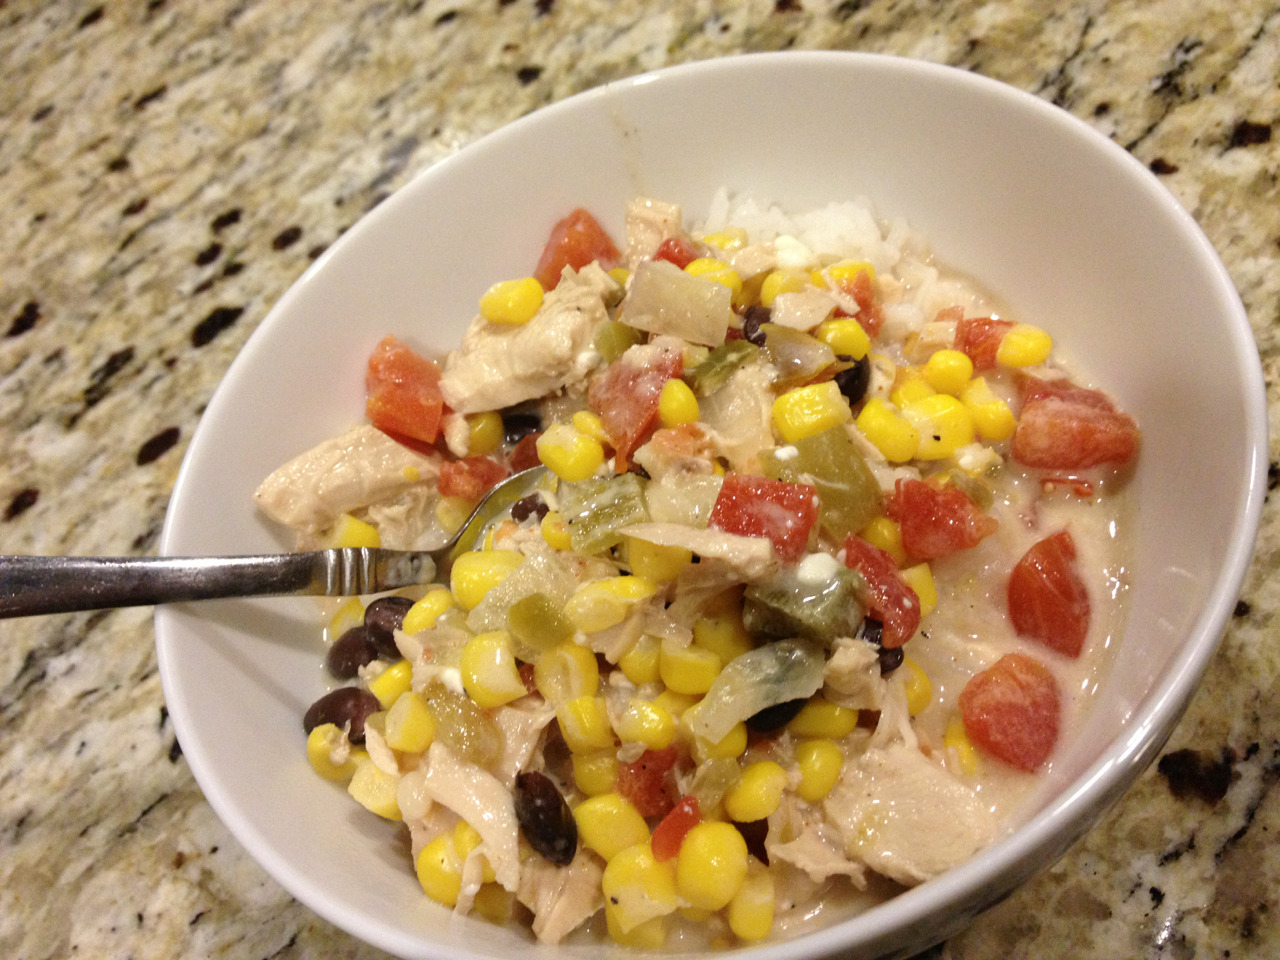 Dinner - White chicken chili with rice